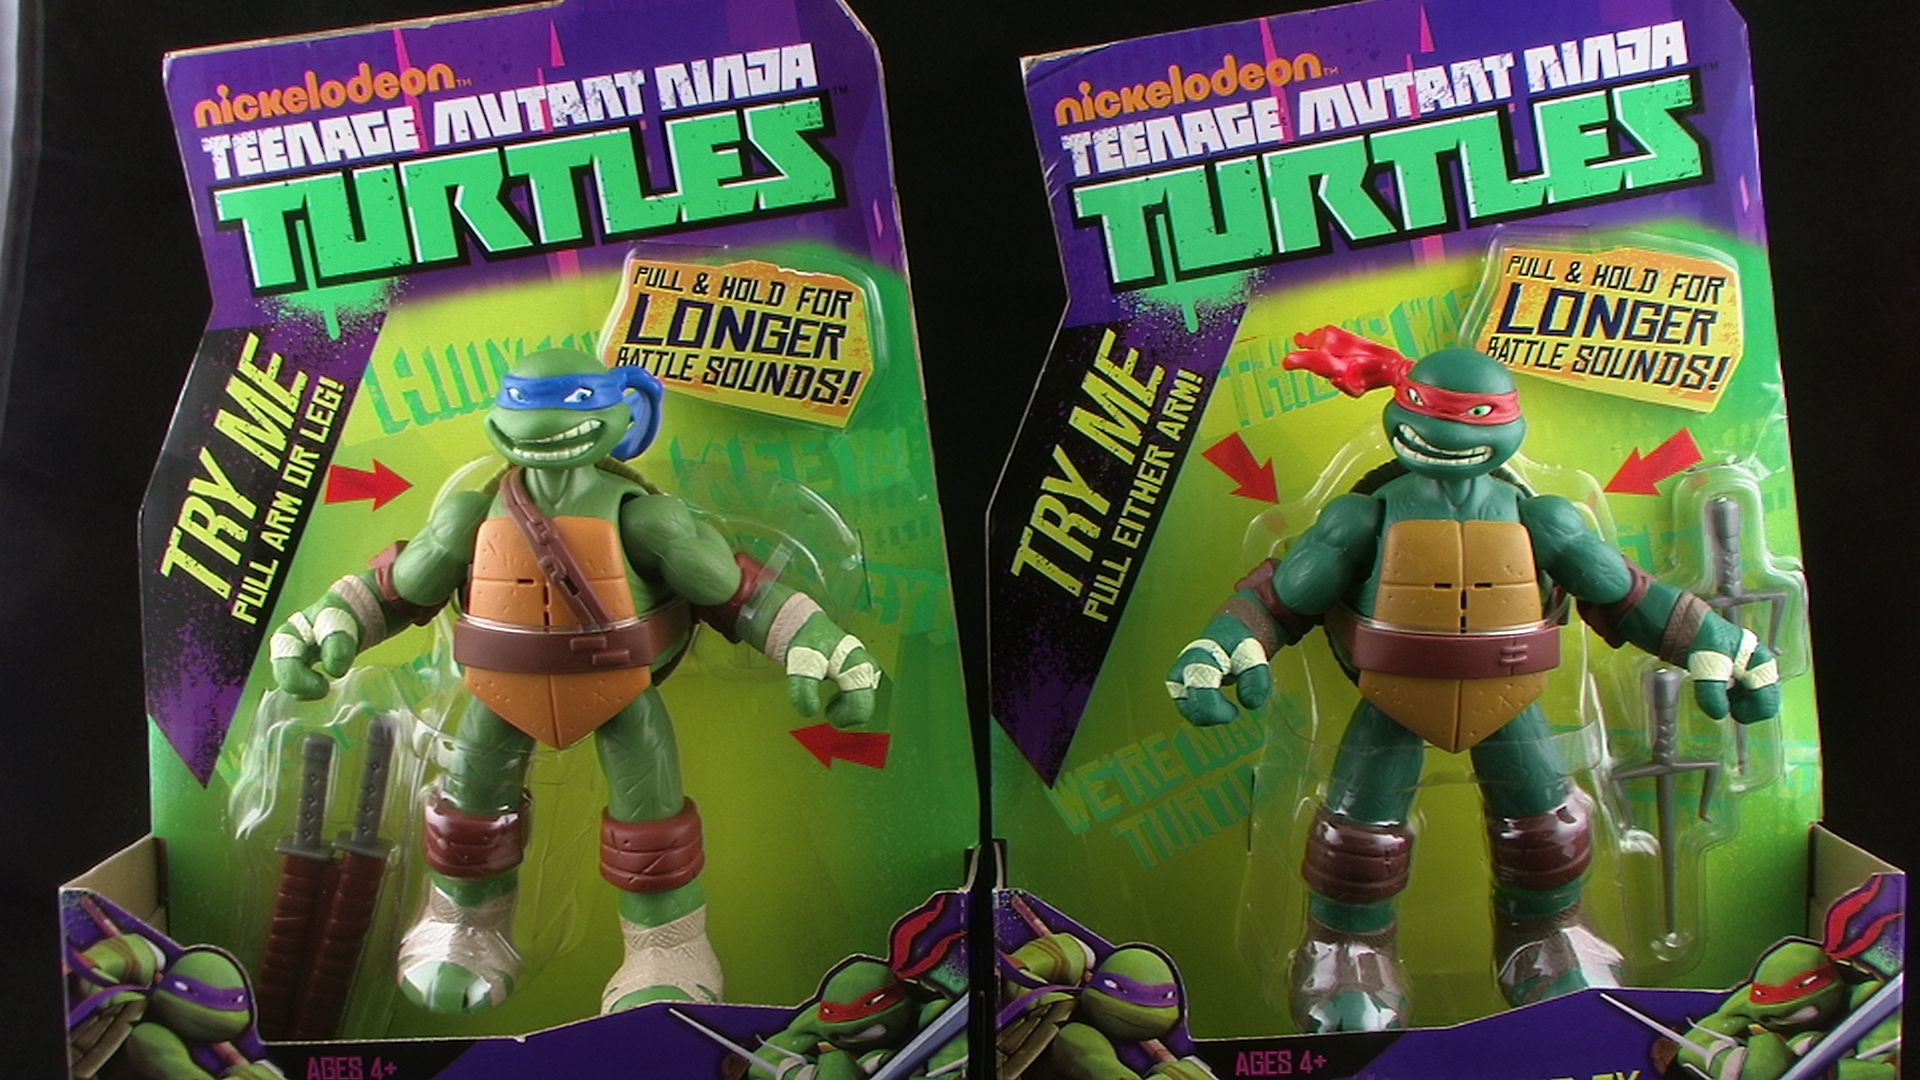 PIC 2467 300x168 Nickelodeon Teenage Mutant Ninja Turtles Power Sound